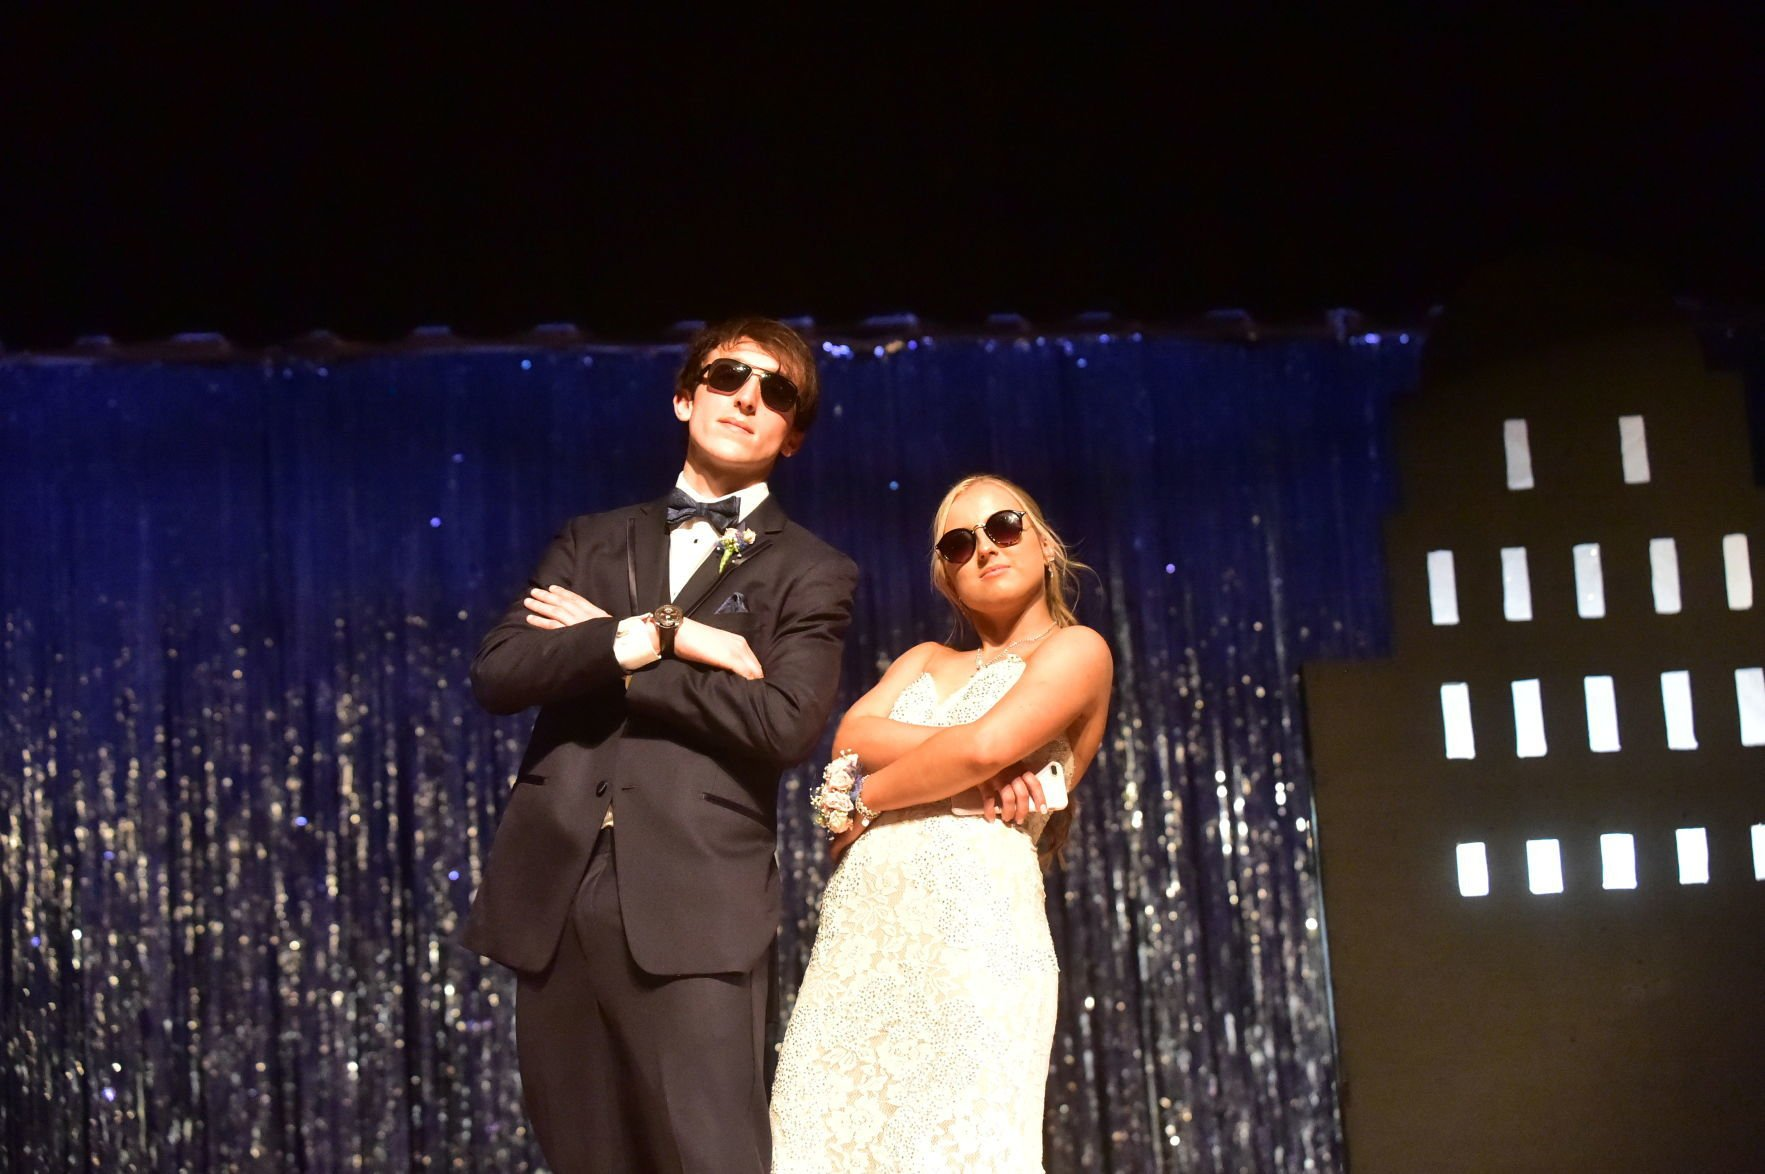 Prom 2019: 'A Night to Remember' | Local